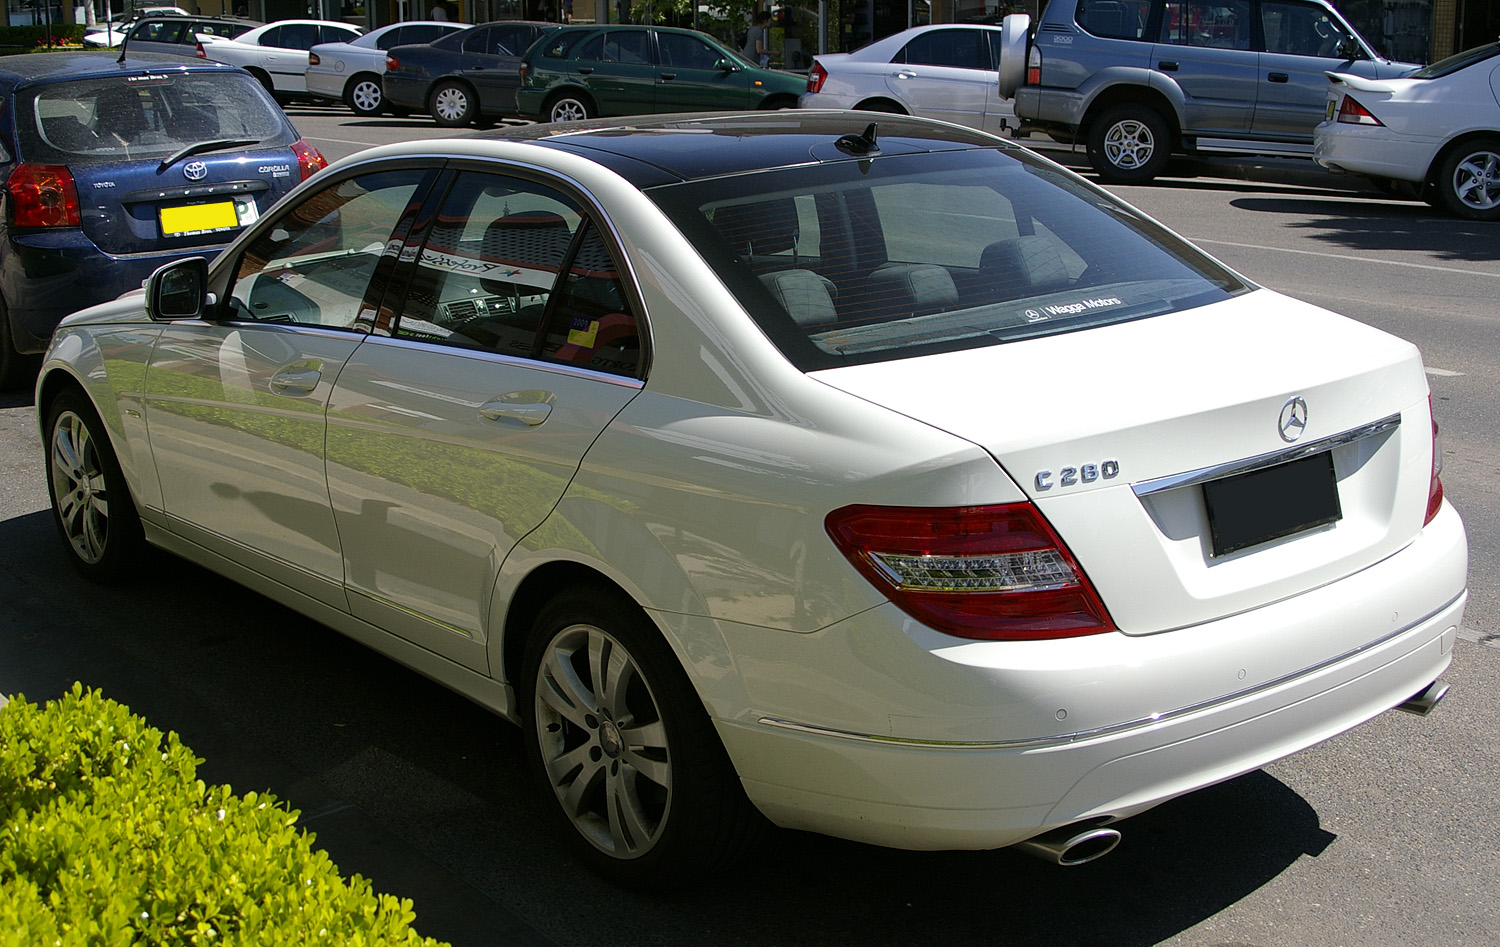 Mercedes benz c 280 technical details history photos on for Mercedes benz auto accessories